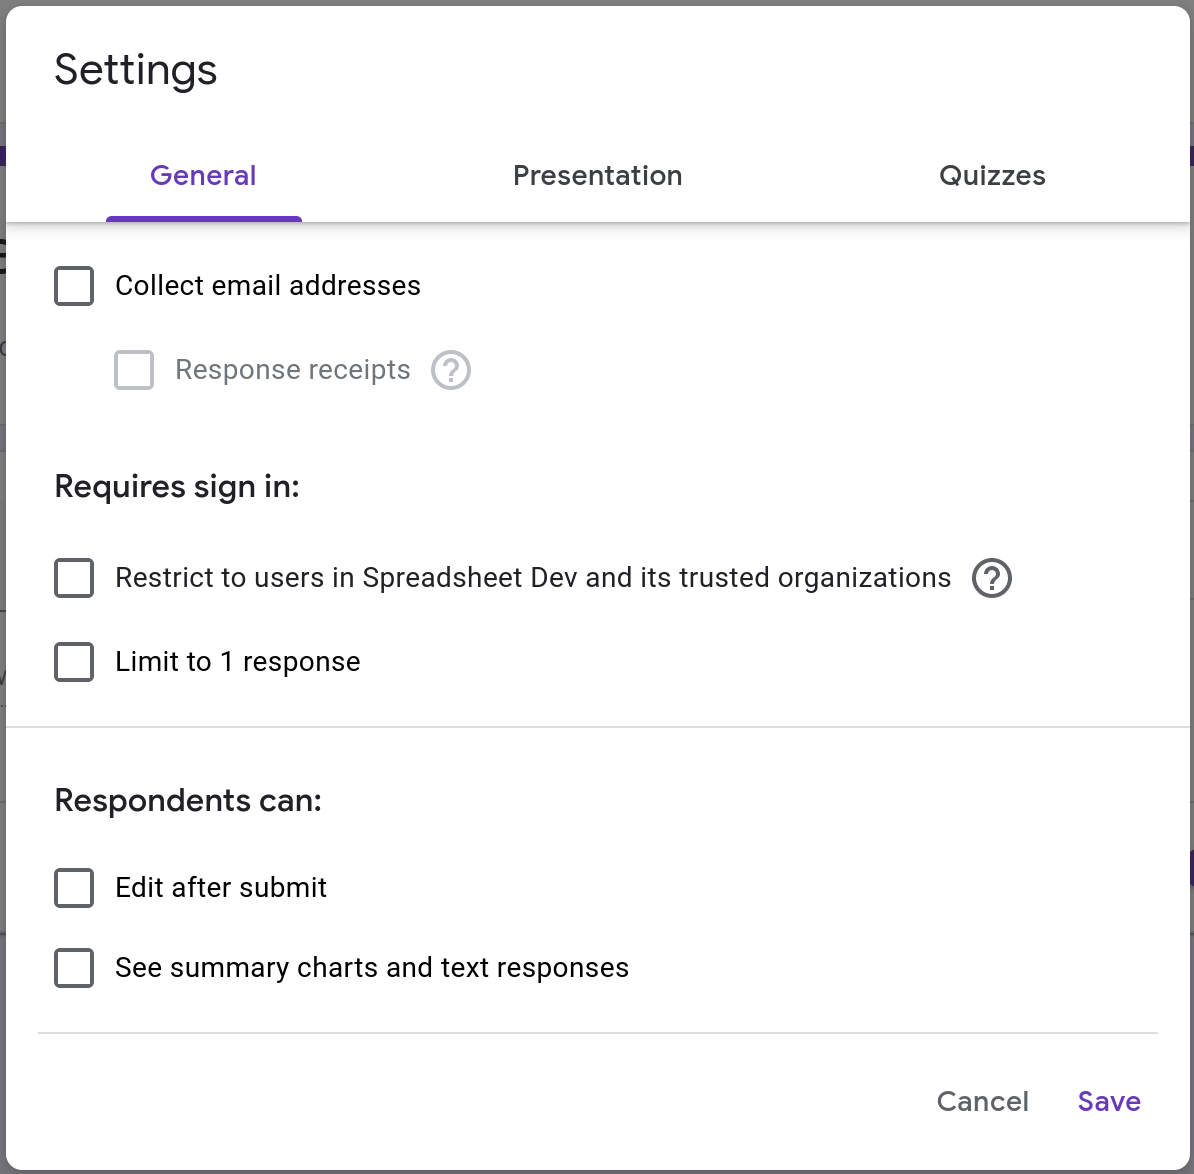 Screenshot of the General tab in the settings page of a Google Form.